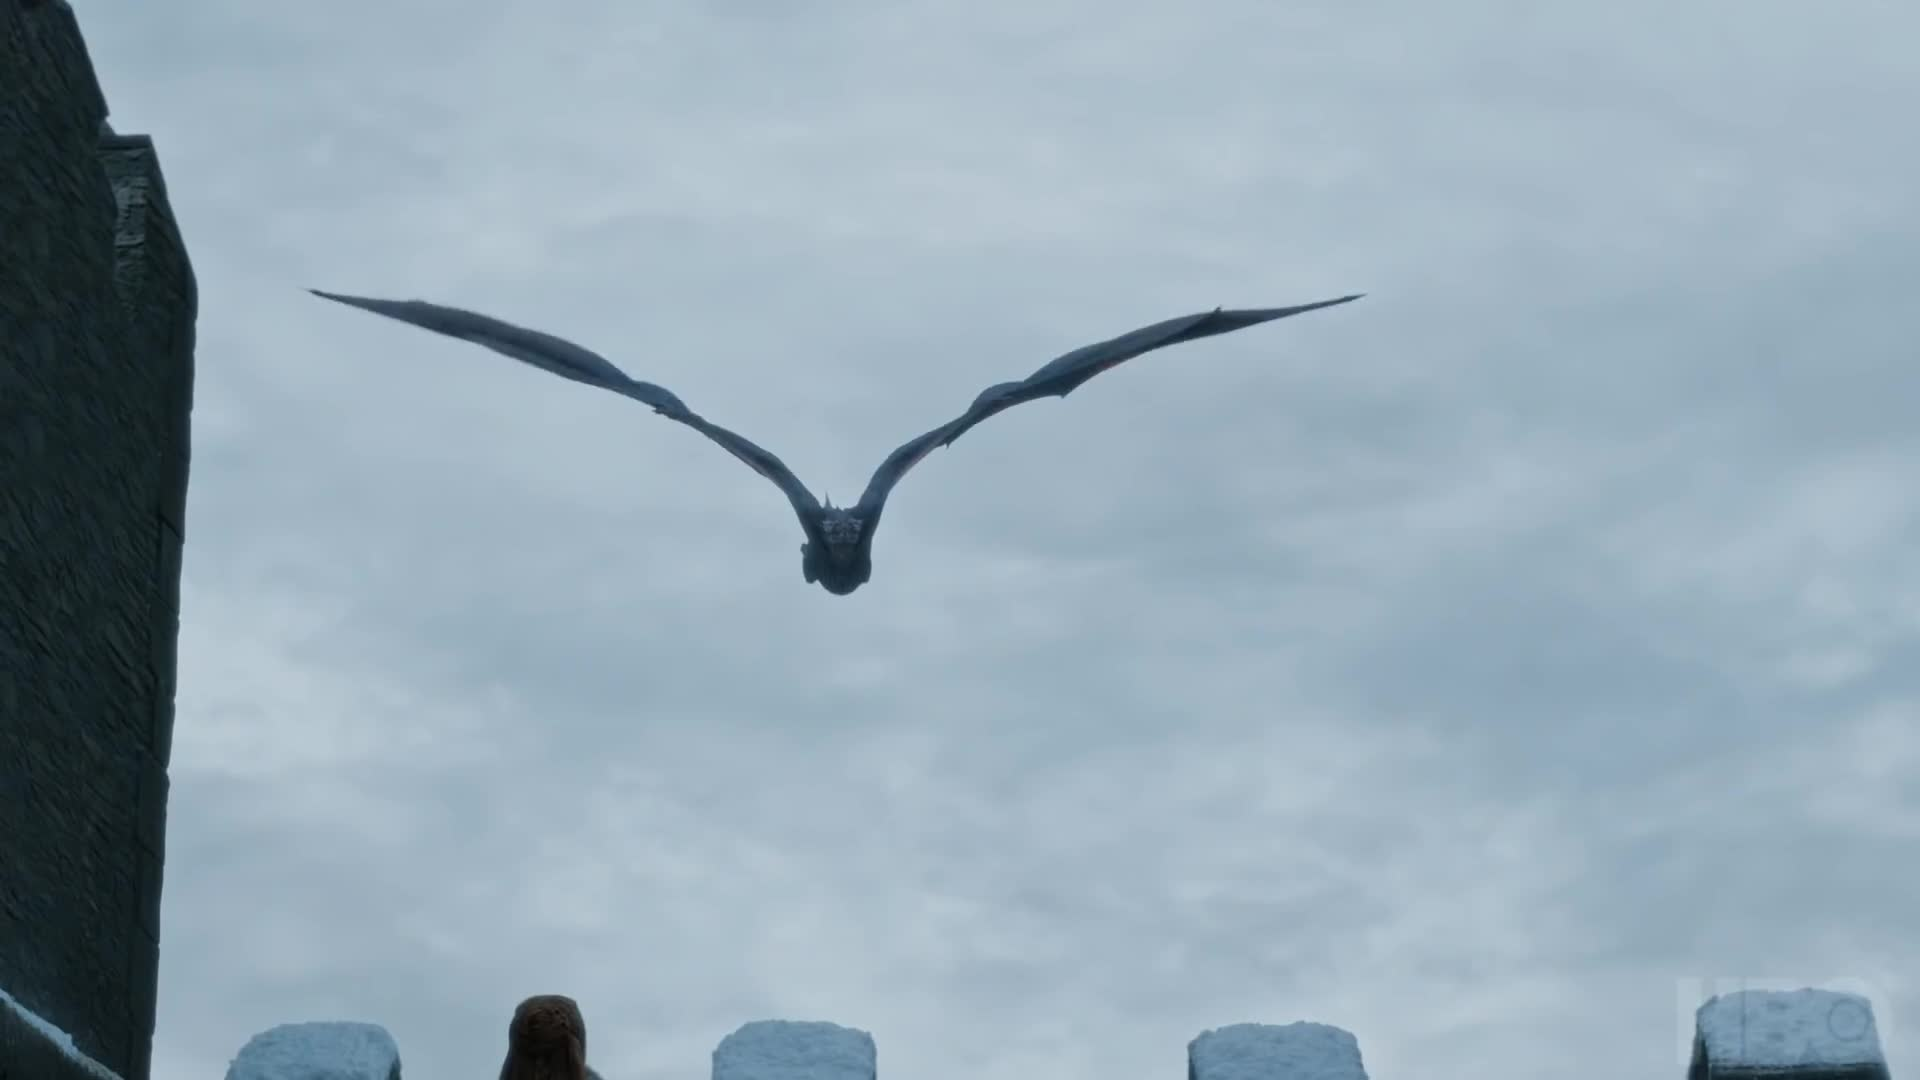 dragon, game of thrones, gameofthrones, hbo, season 8, sophie turner, television, Dragons Winterfell Game of Thrones GIFs